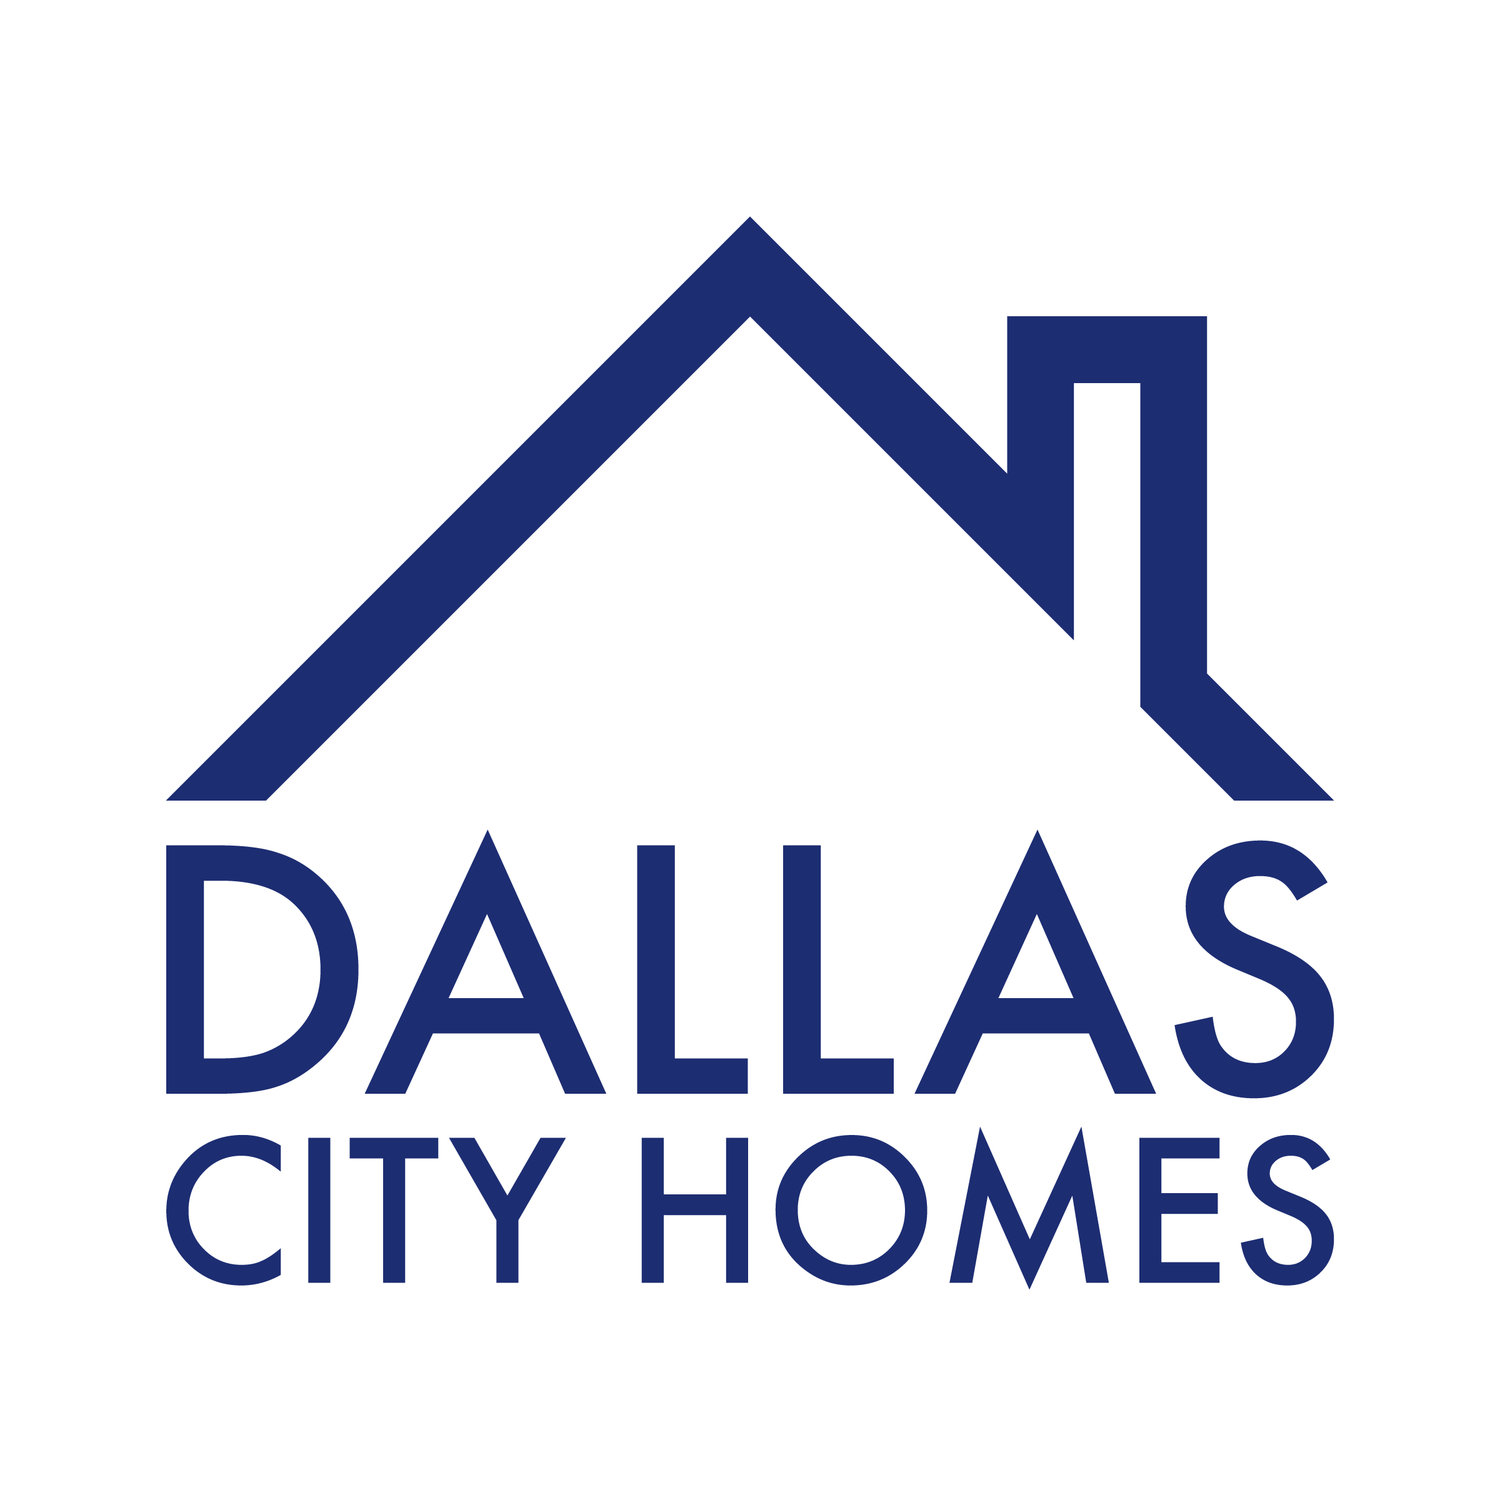 Dallas City Homes